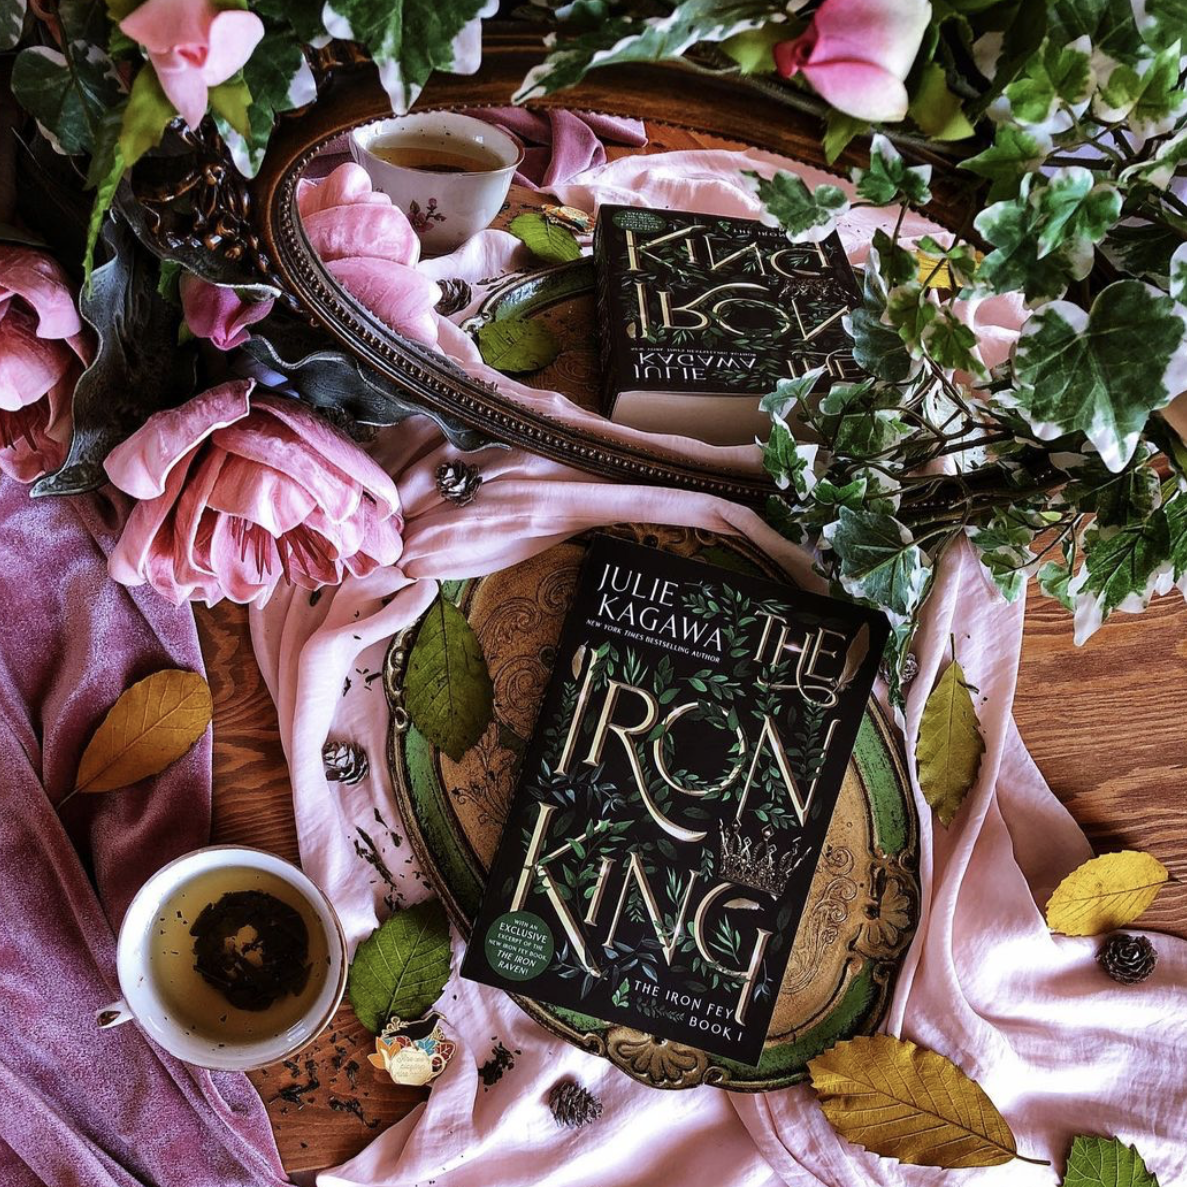 The Iron King Paperback by Julie Kagawa